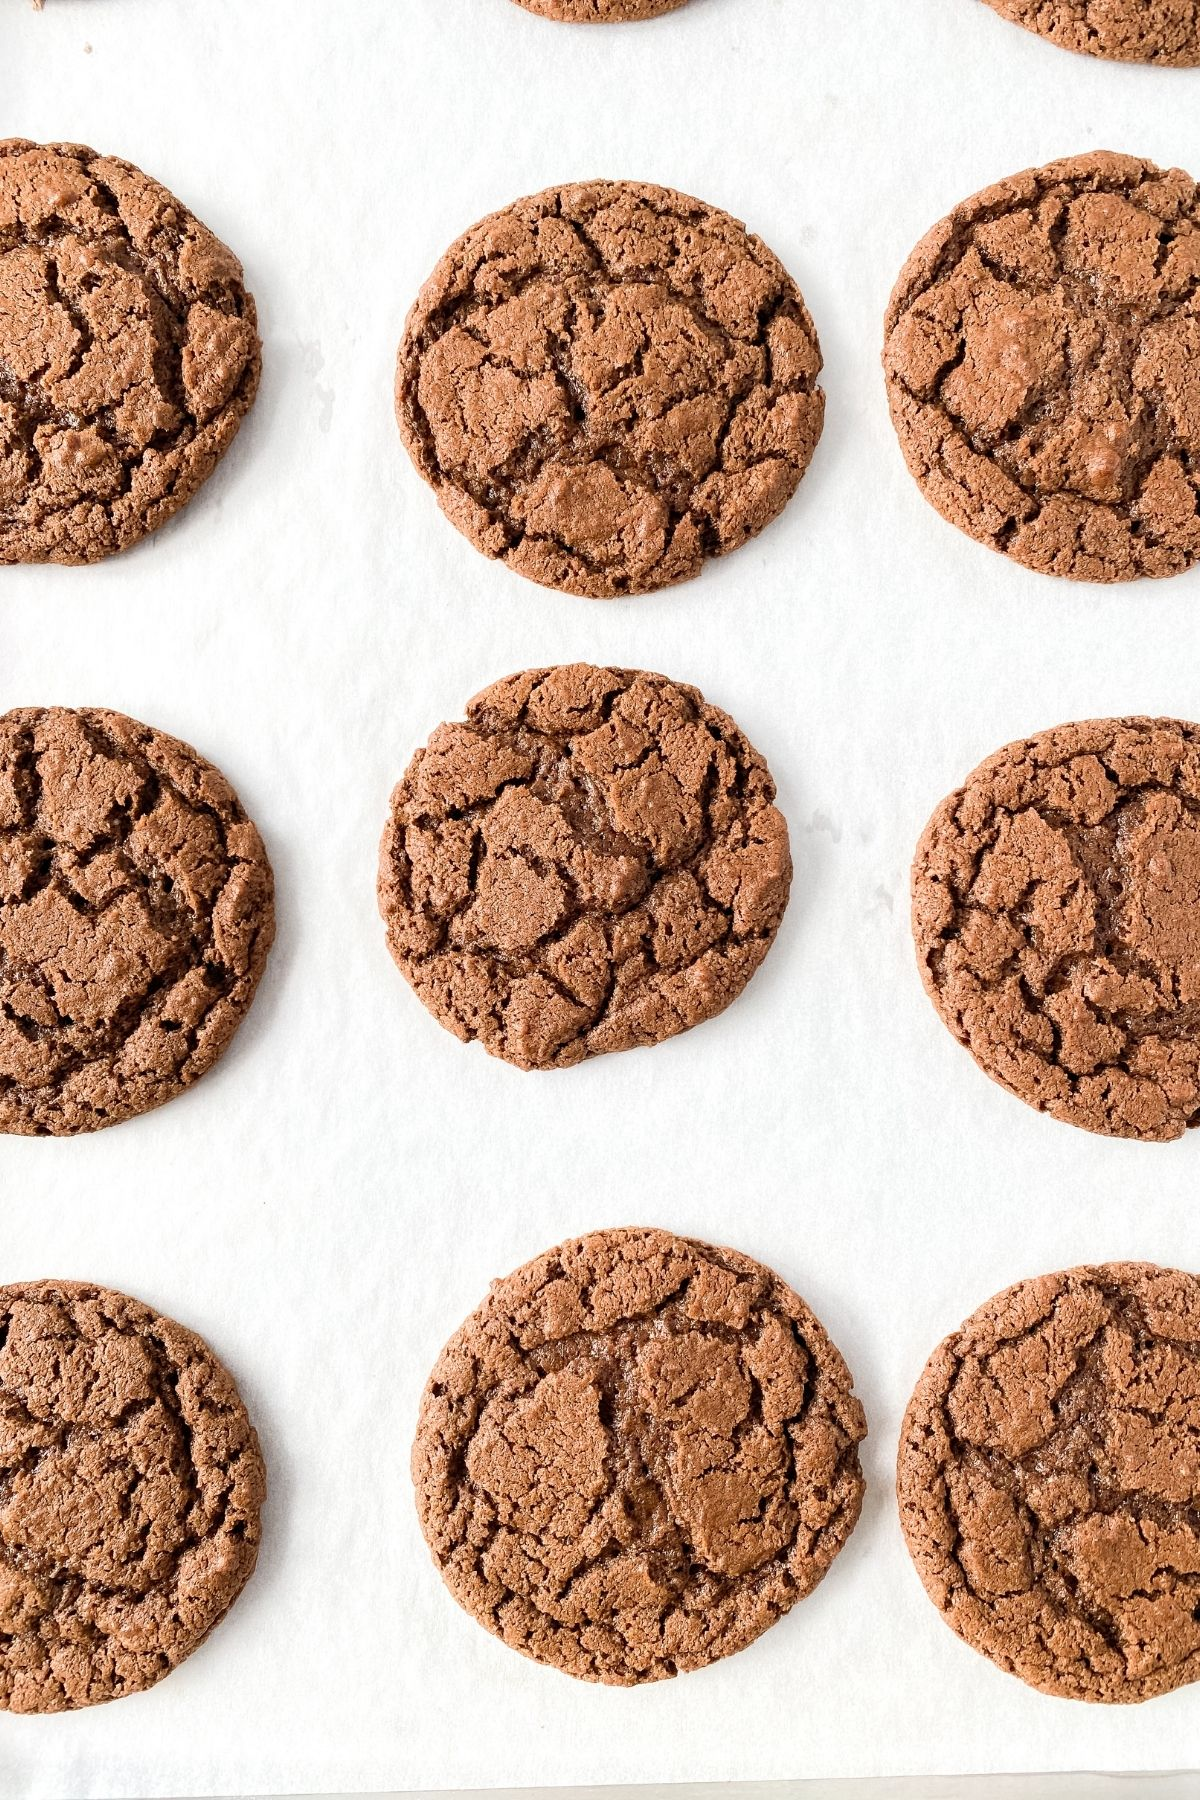 Baked chocolate cookies on tray